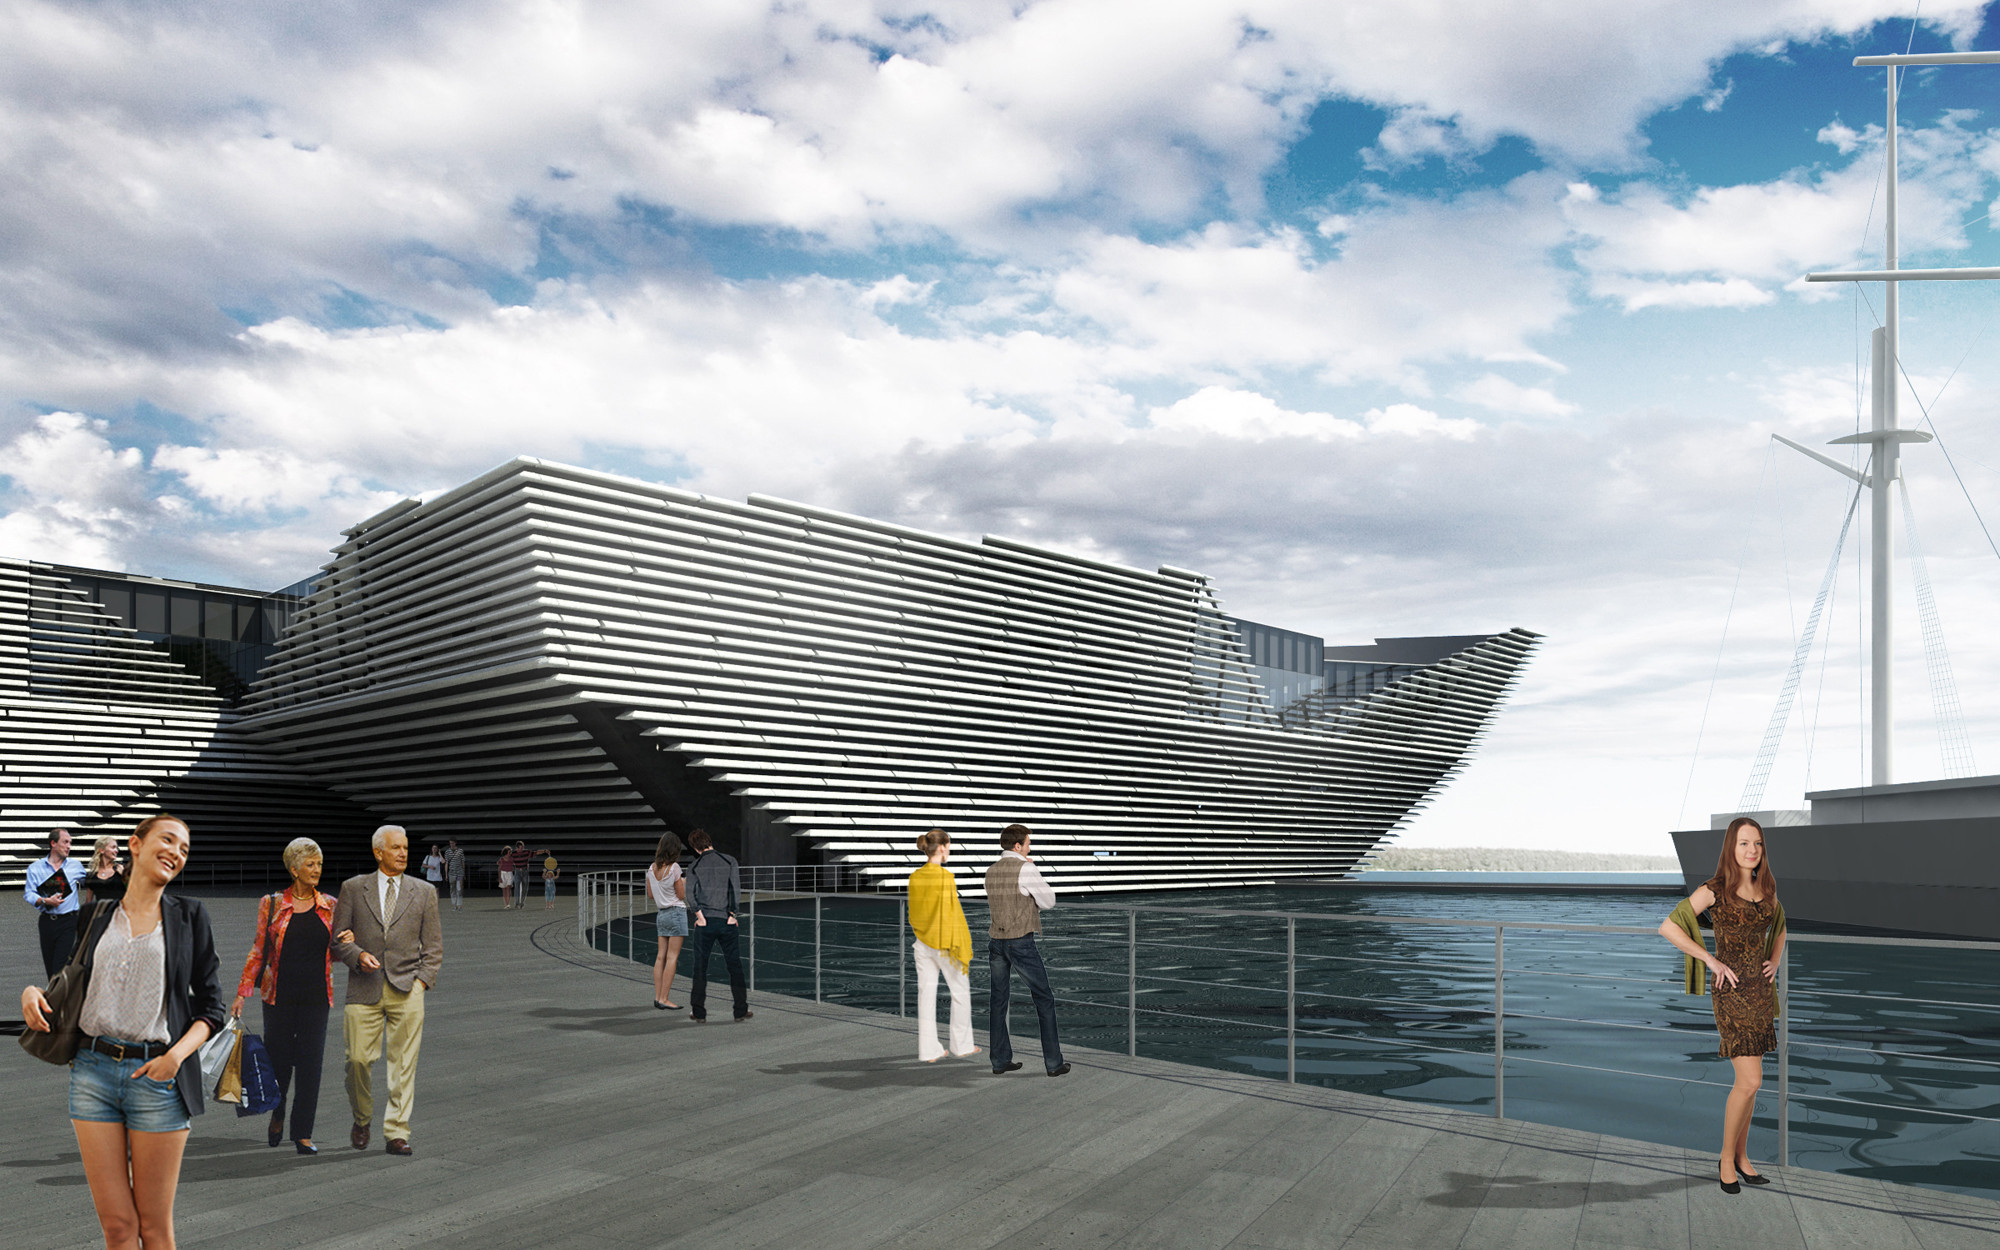 And the Winner Is... Competitive Advantages?, Kengo Kuma's competition winning design for the V&A at Dundee. Courtesy V&A.